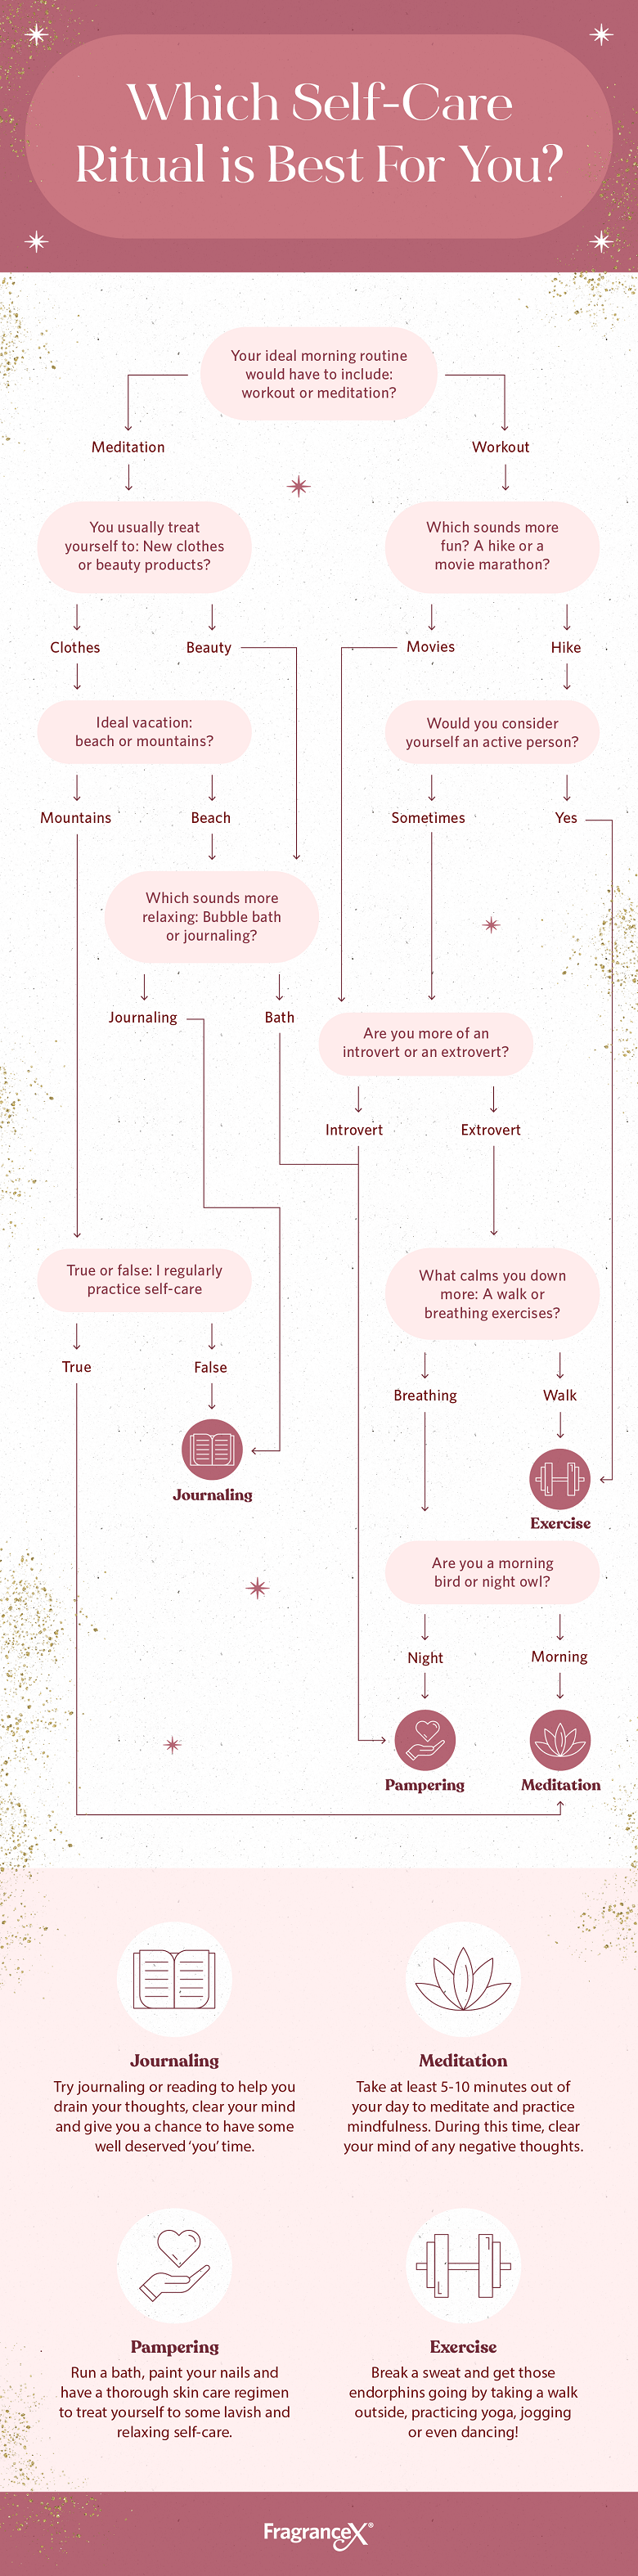 which self-care ritual is best for you flowchart